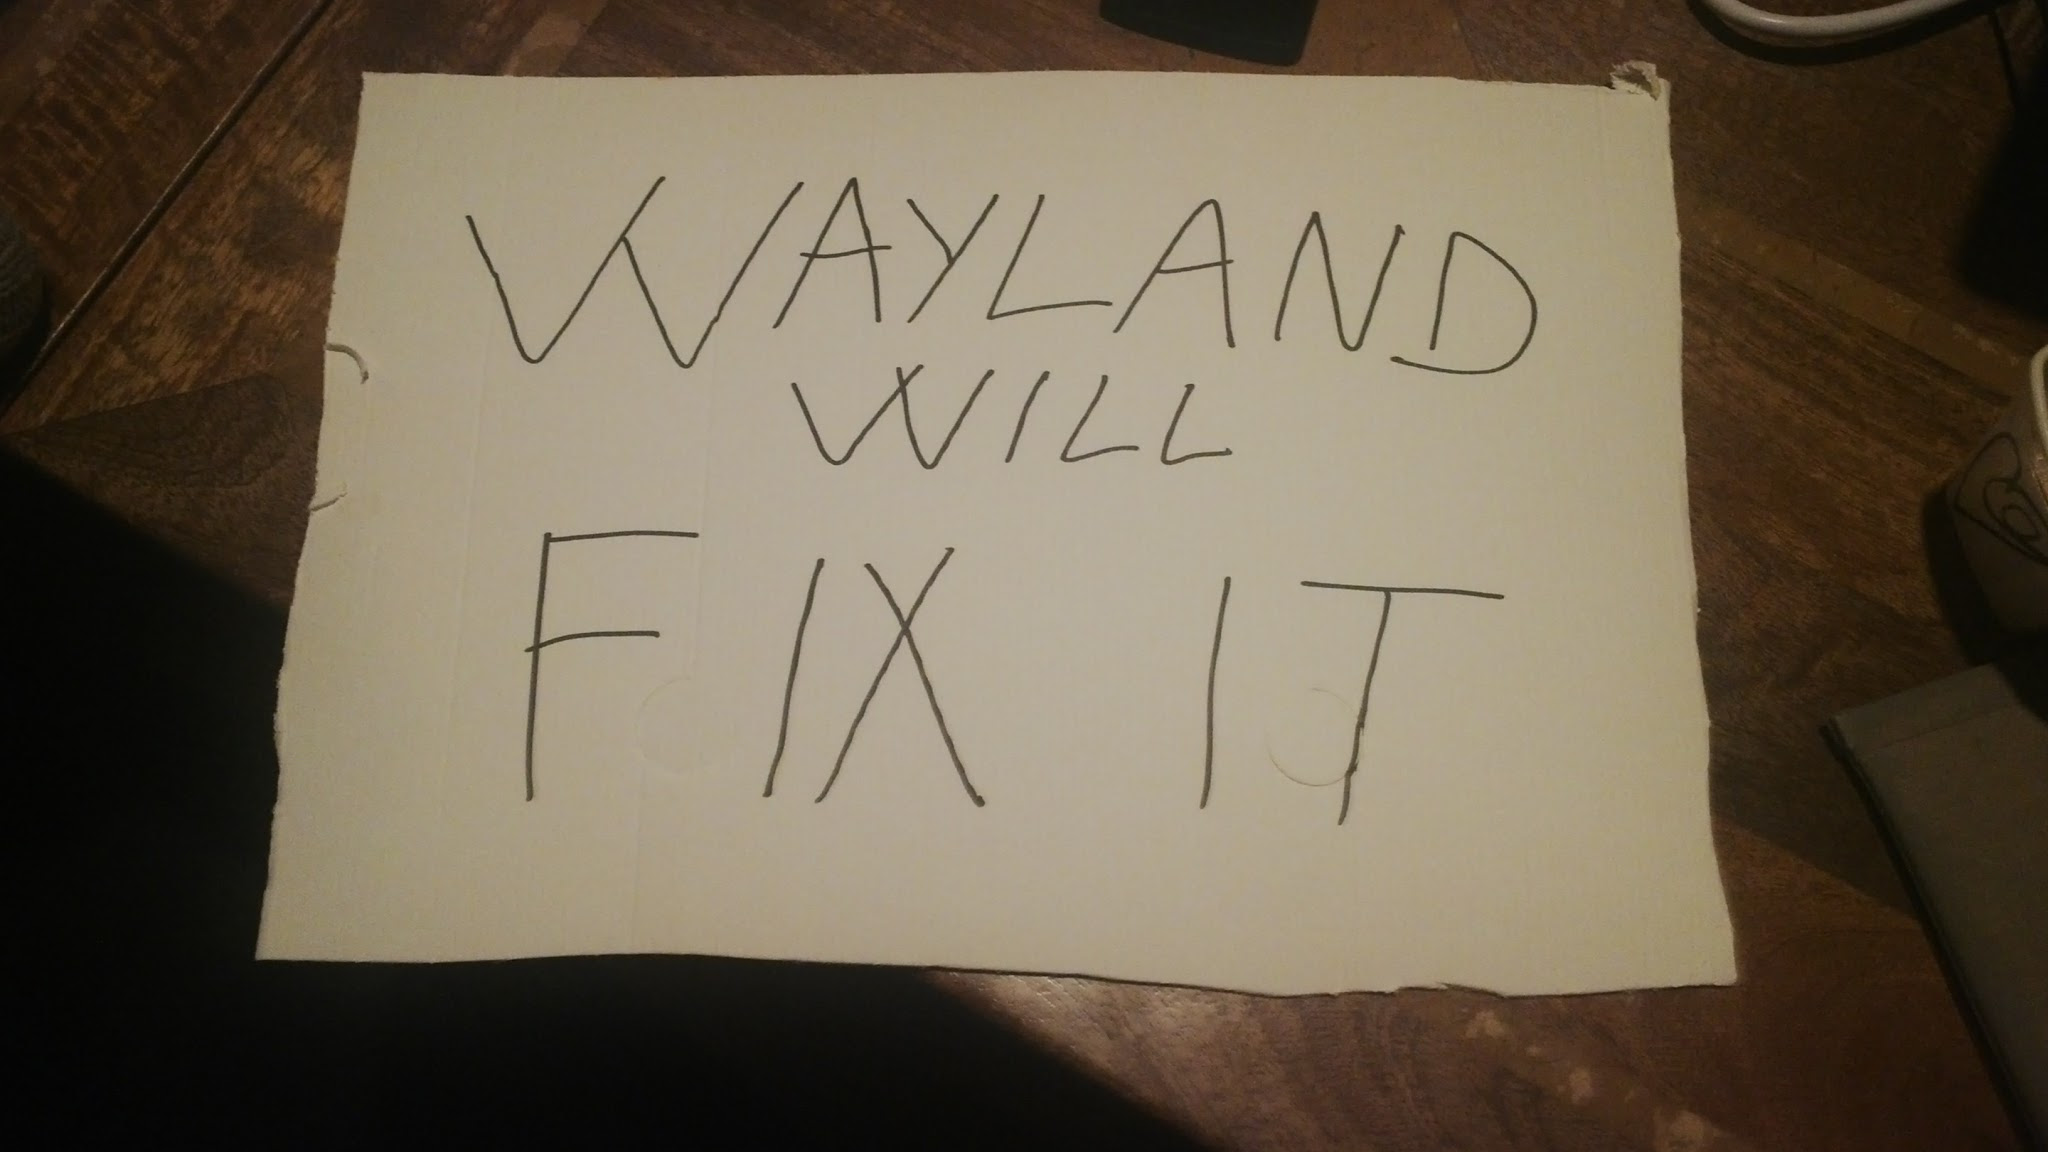 Wayland will fix it!